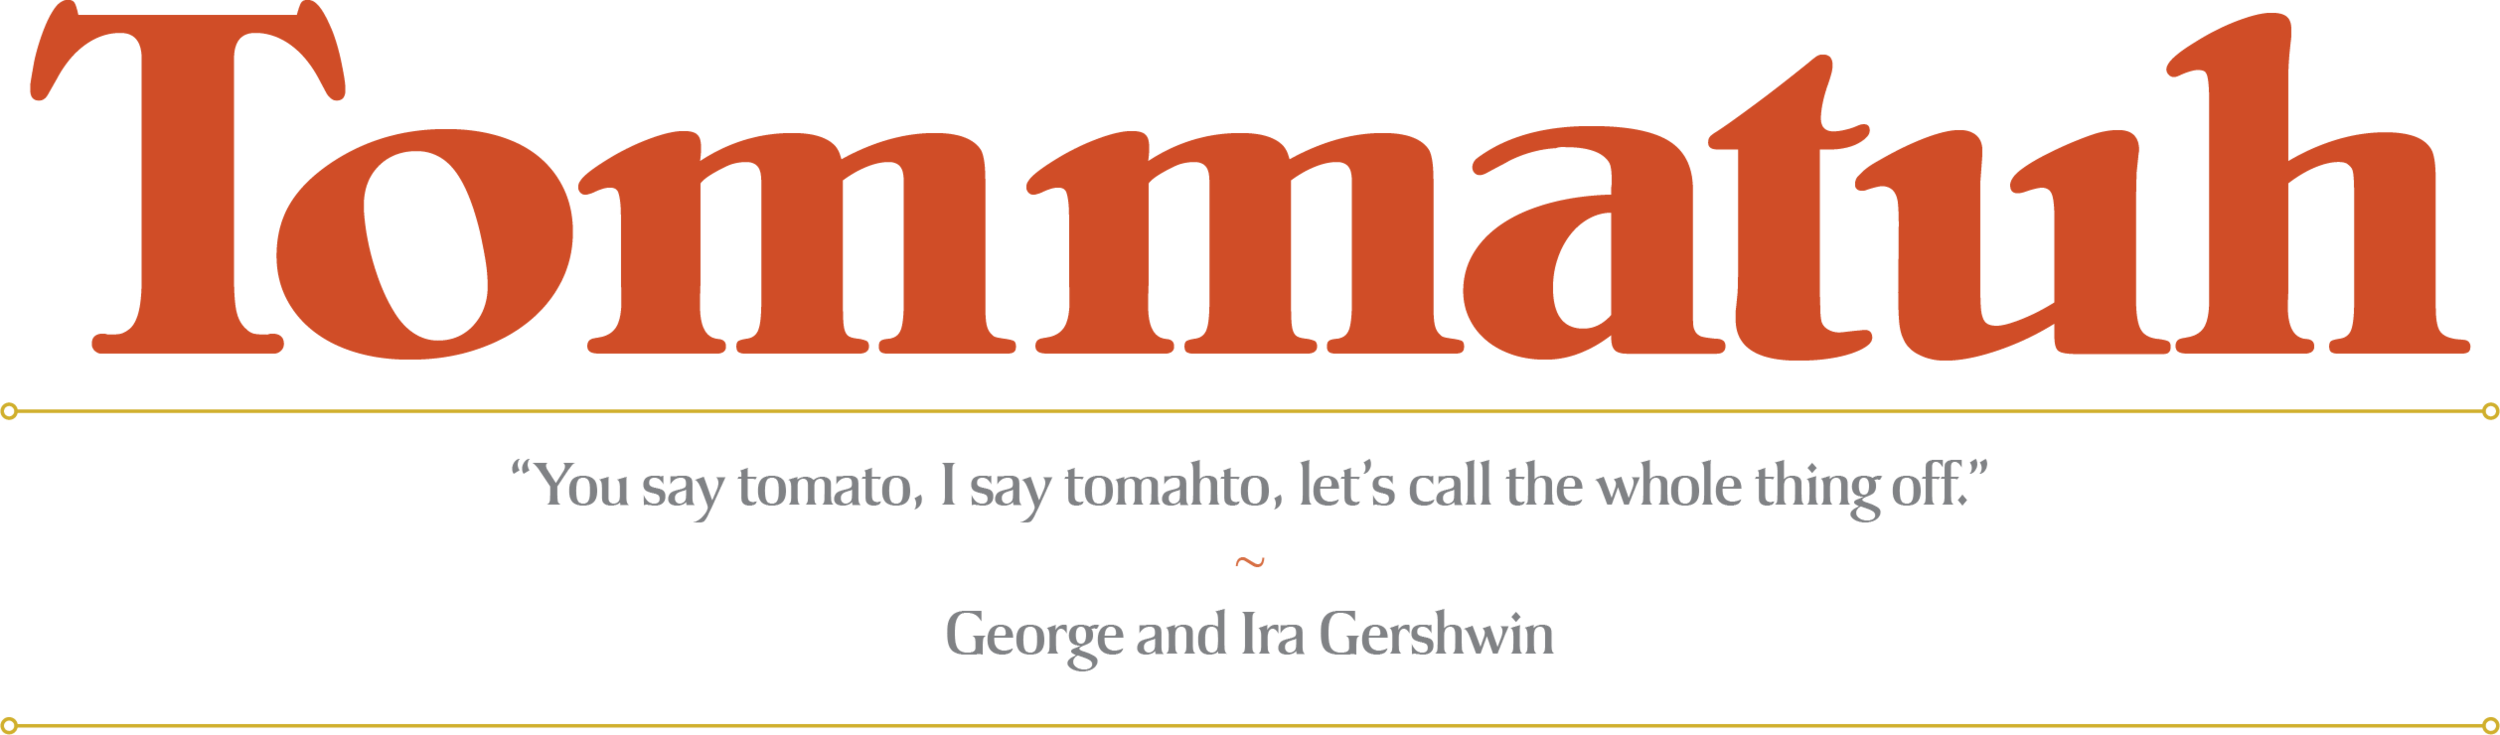 tomato-4.png